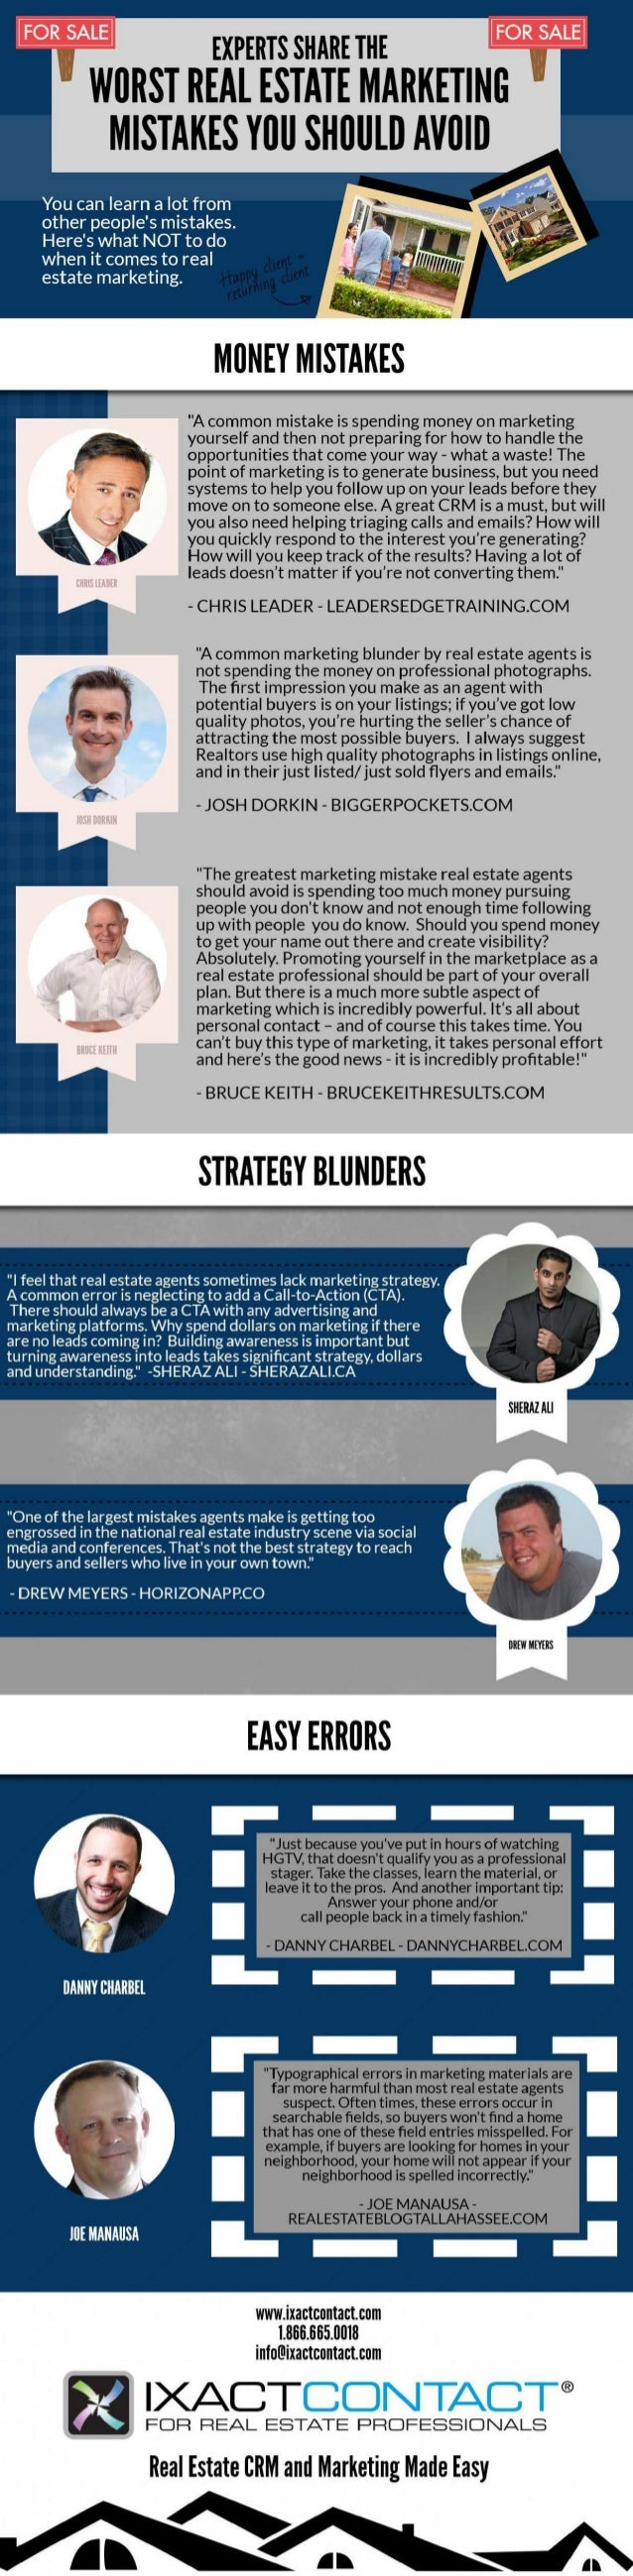 [INFOGRAPHIC] Experts Share the Worst Real Estate Marketing Mistakes You Should Avoid